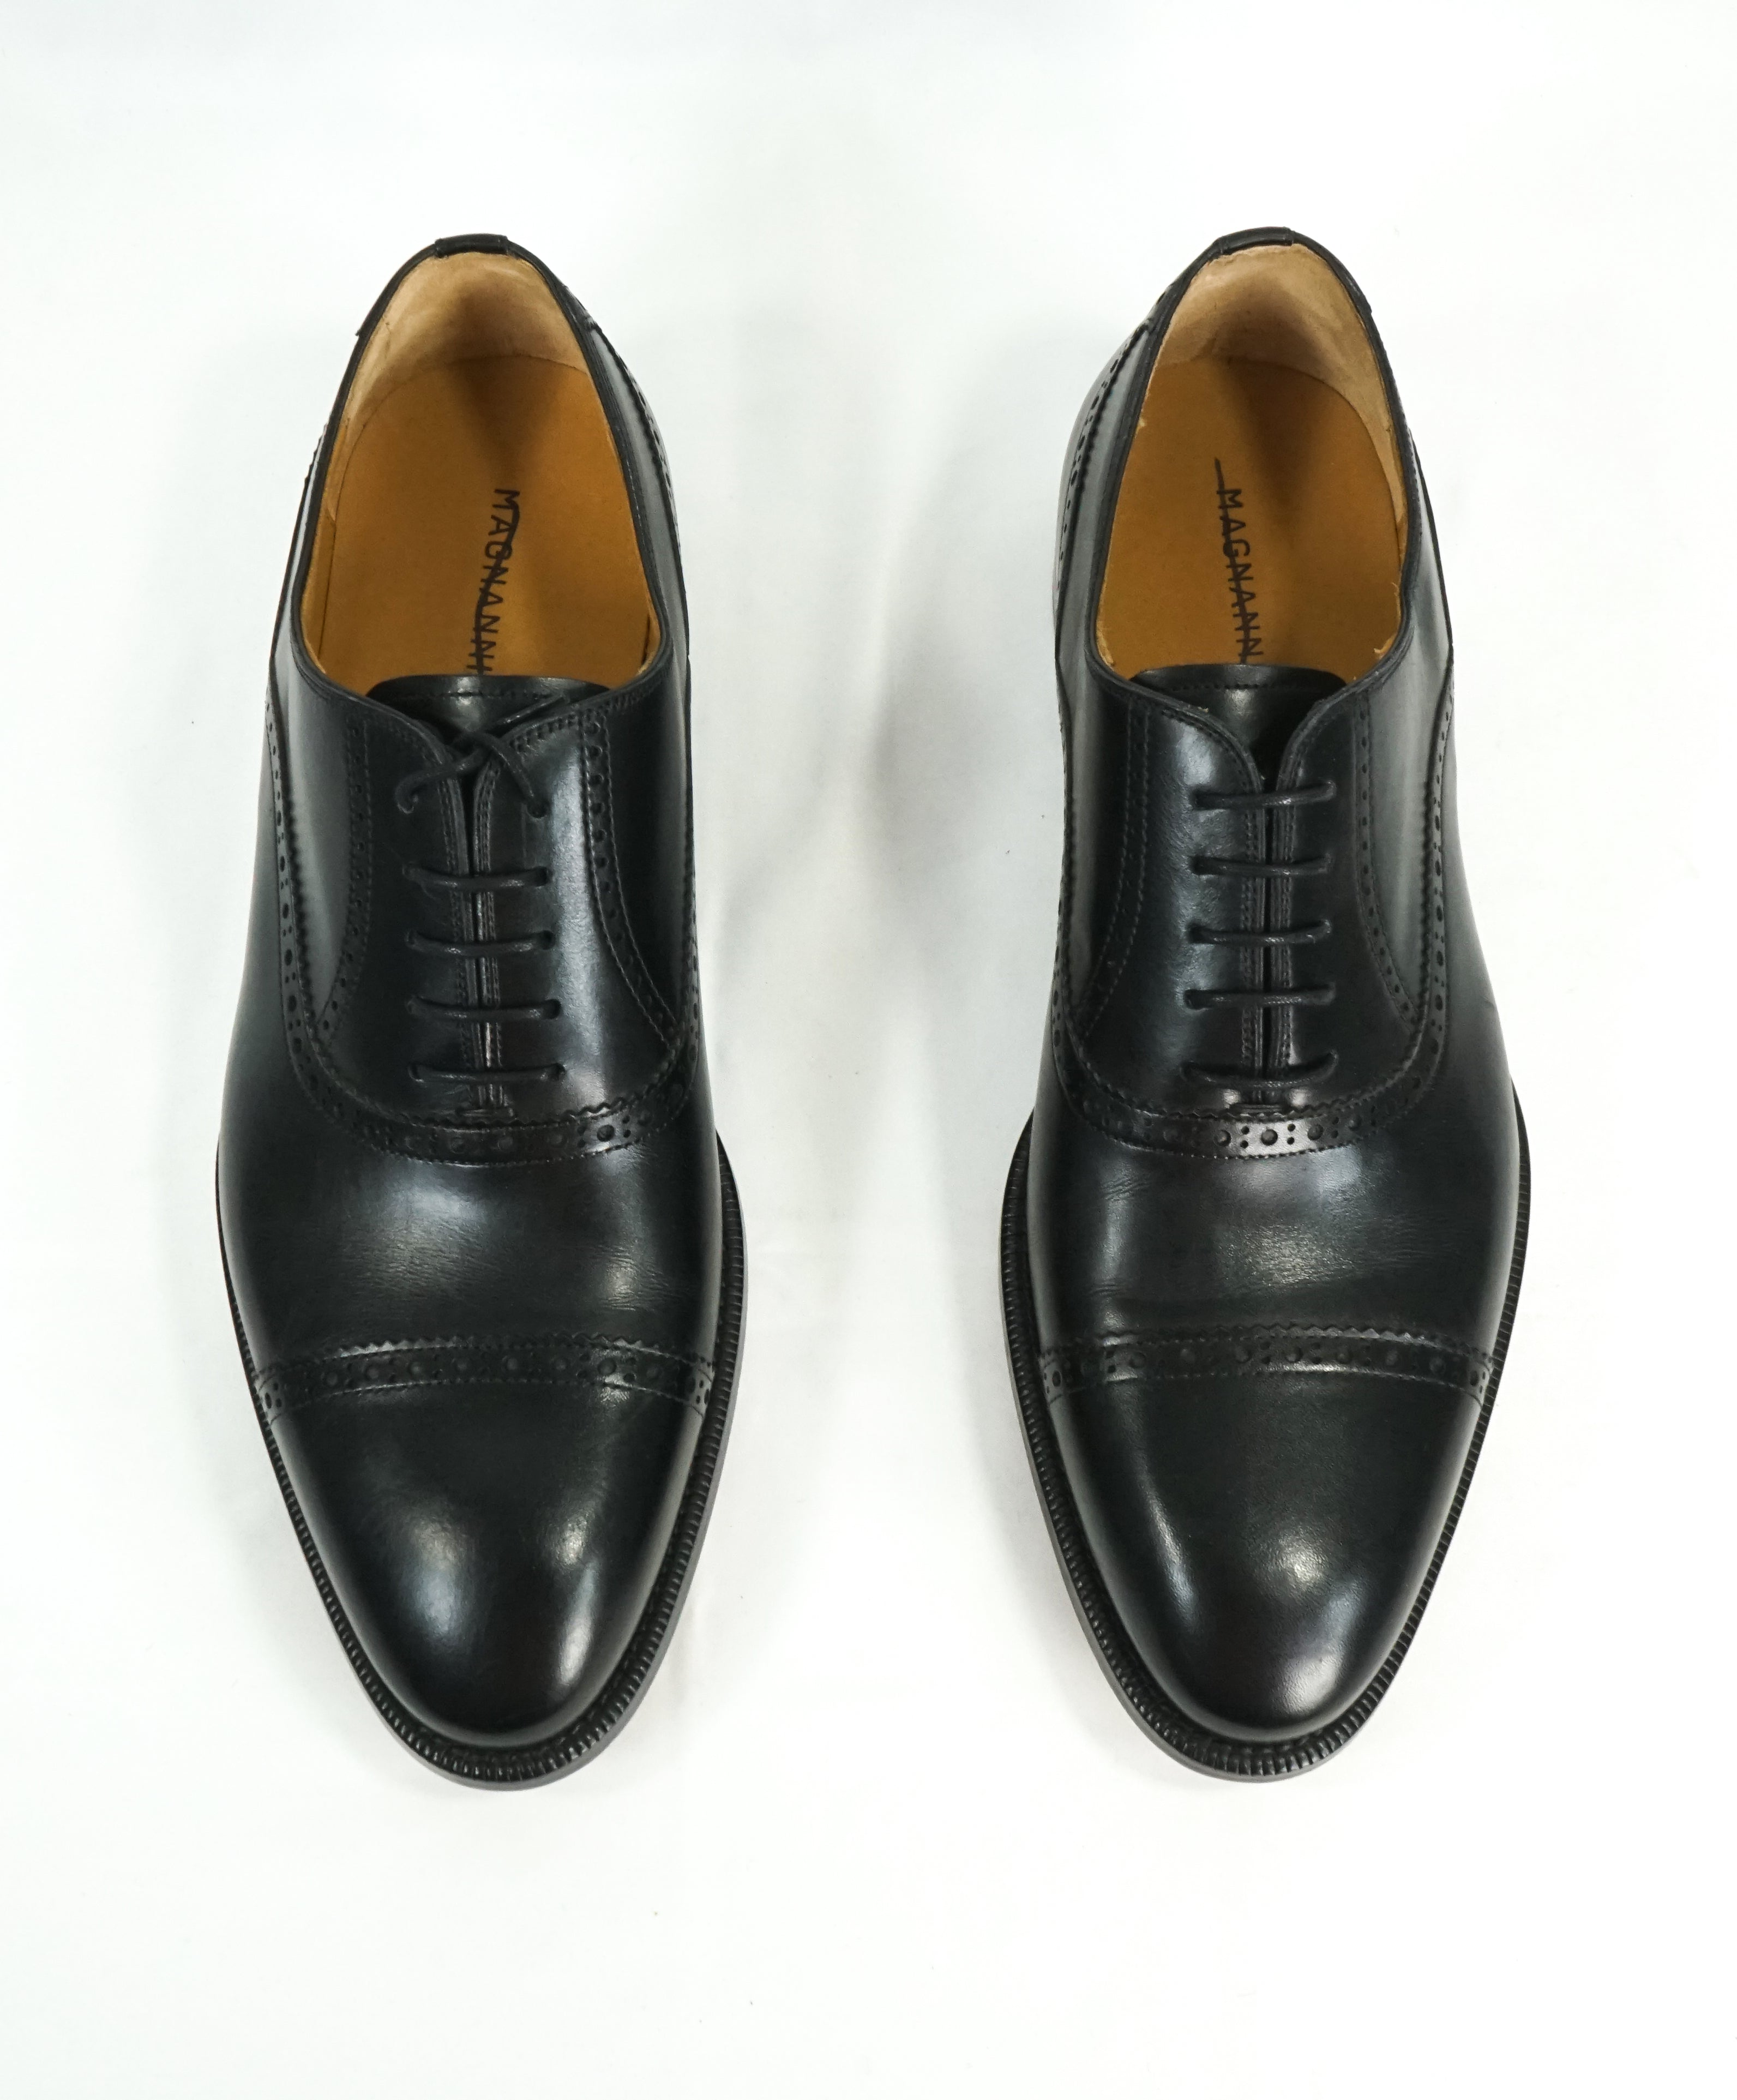 MAGNANNI - Cap Toe Black Brogue Oxfords With Leather Soles - 8